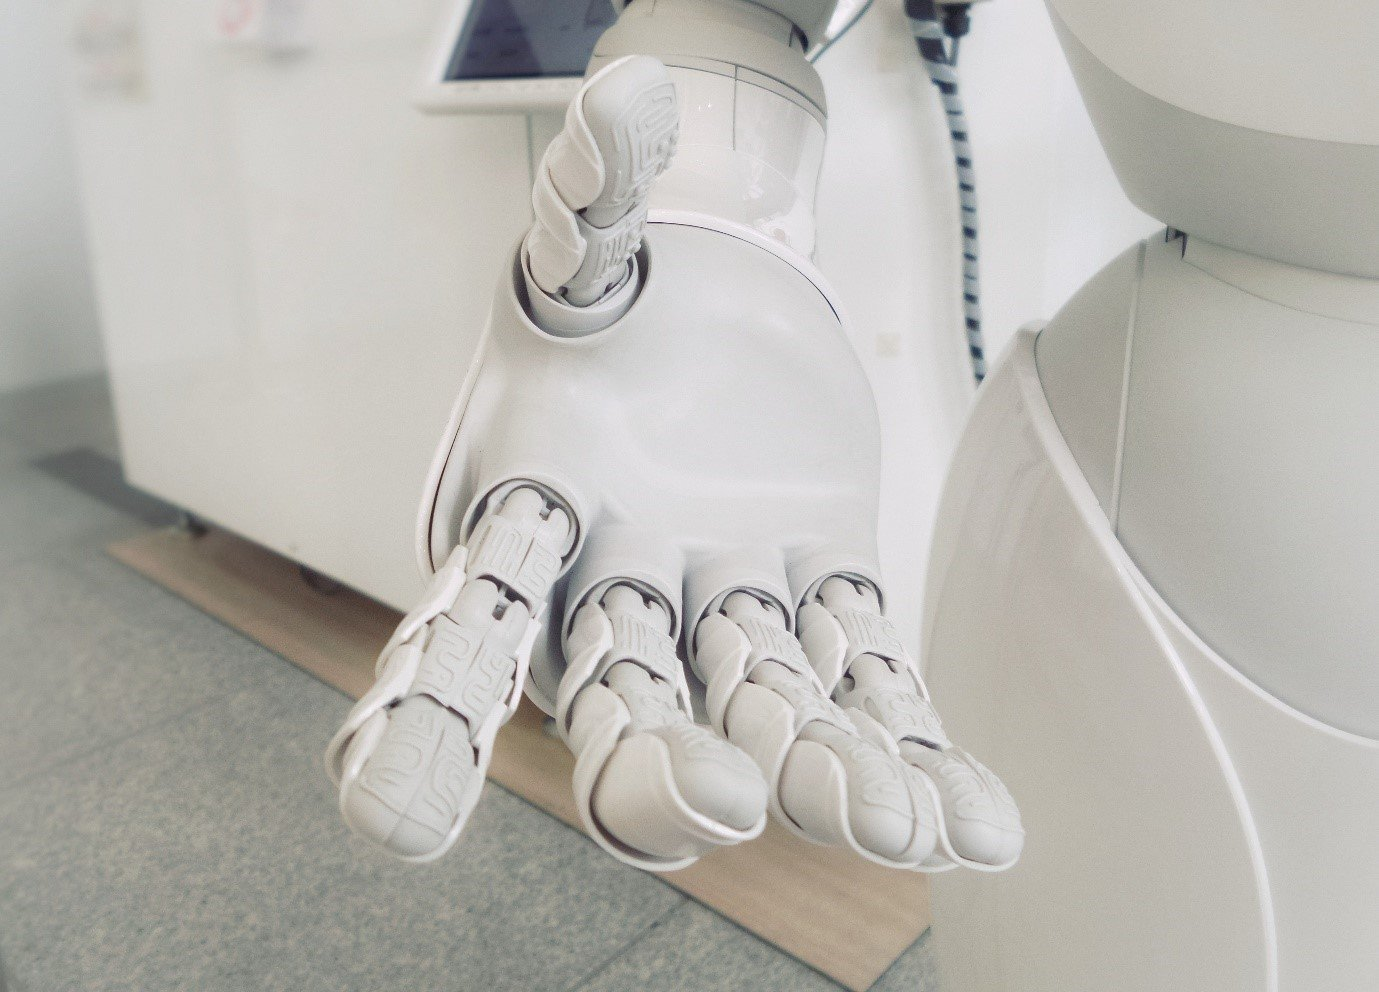 hand robot artificial intelligence white fingers